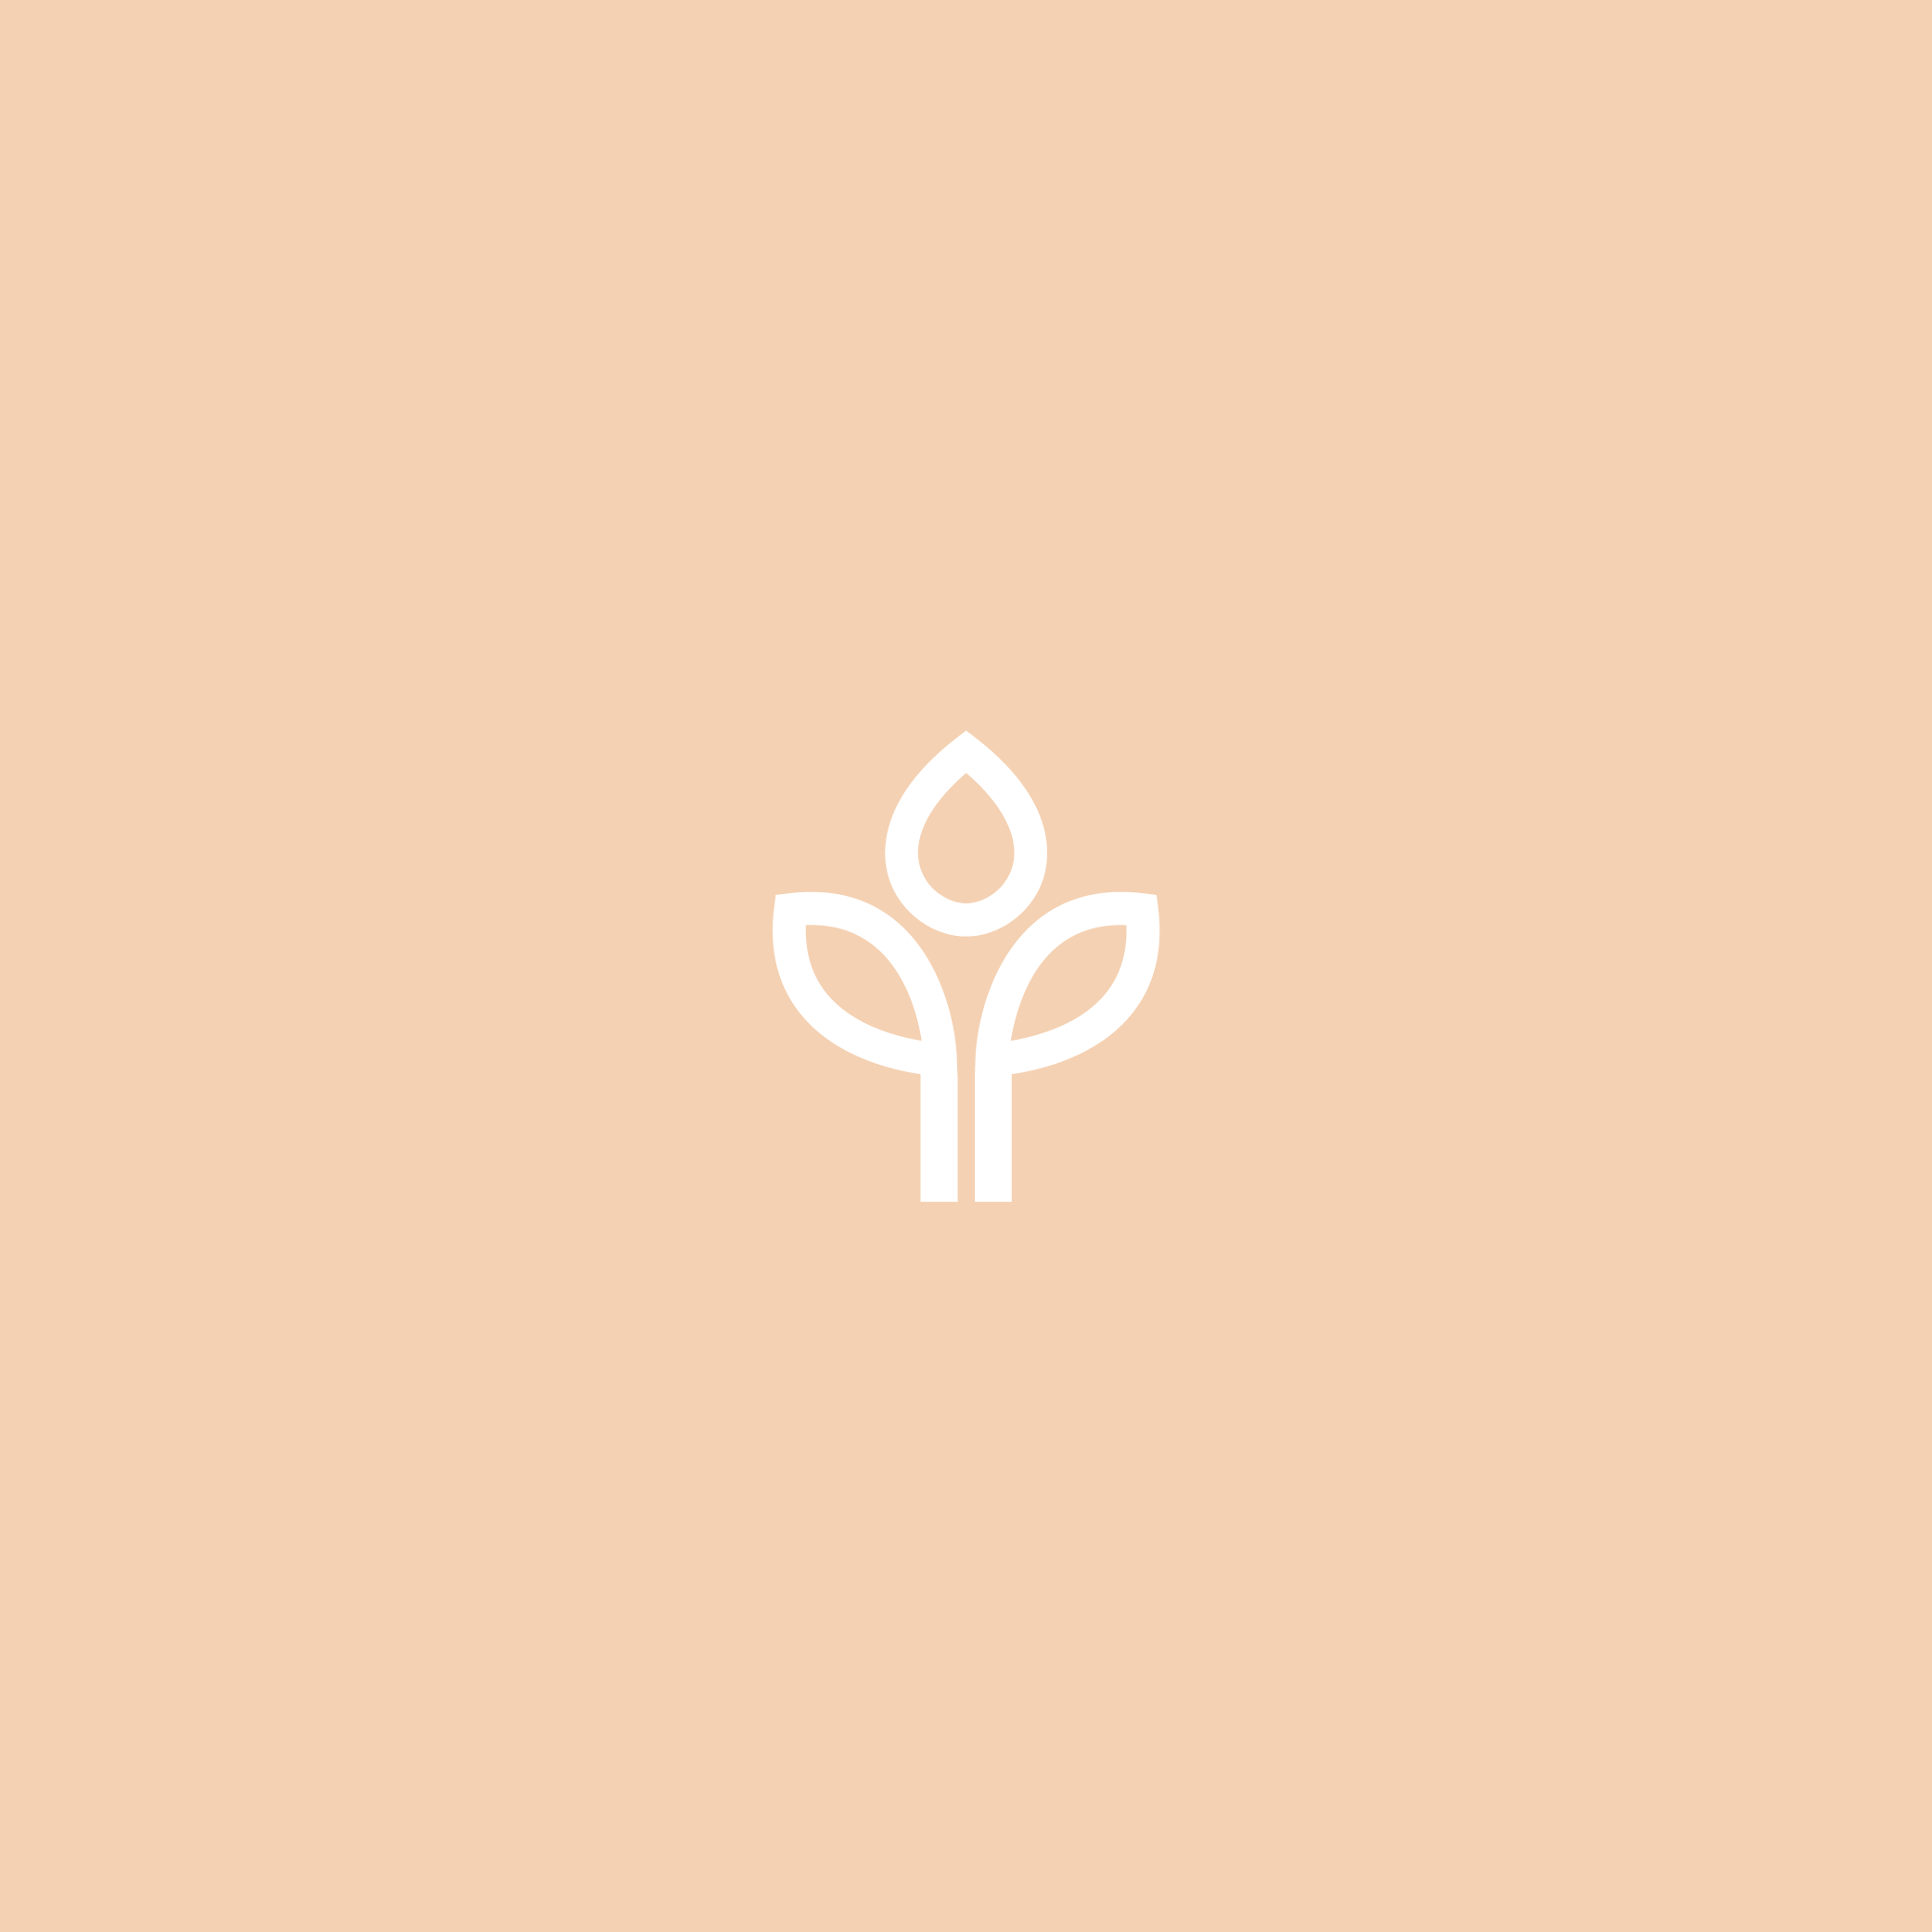 Blossom-01.png